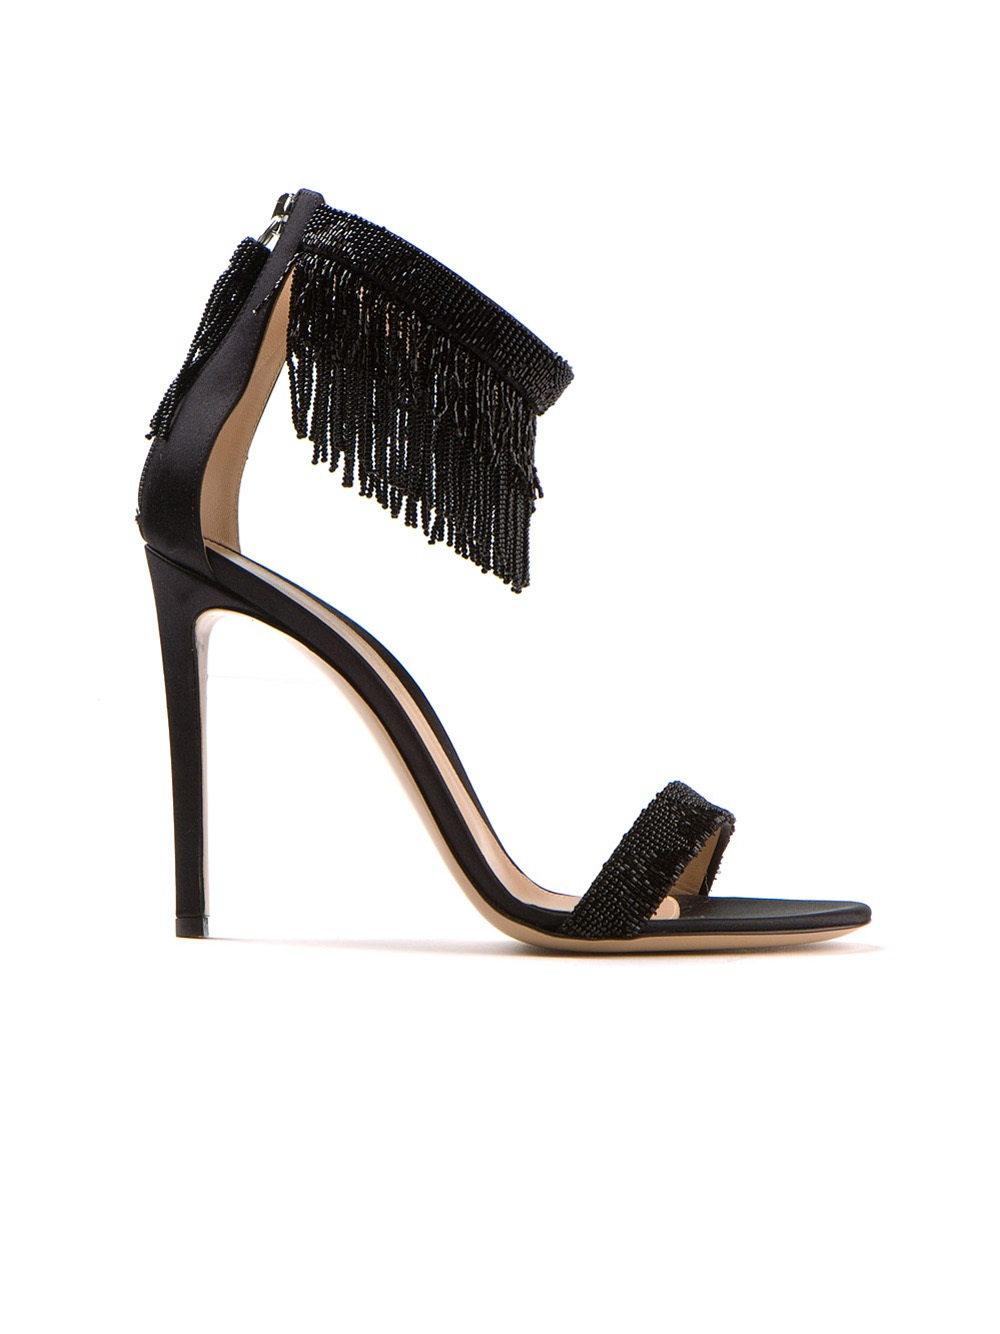 Gianvito Rossi Fringe Ankle-Tie Sandals tumblr sale online sale sneakernews b4vm0